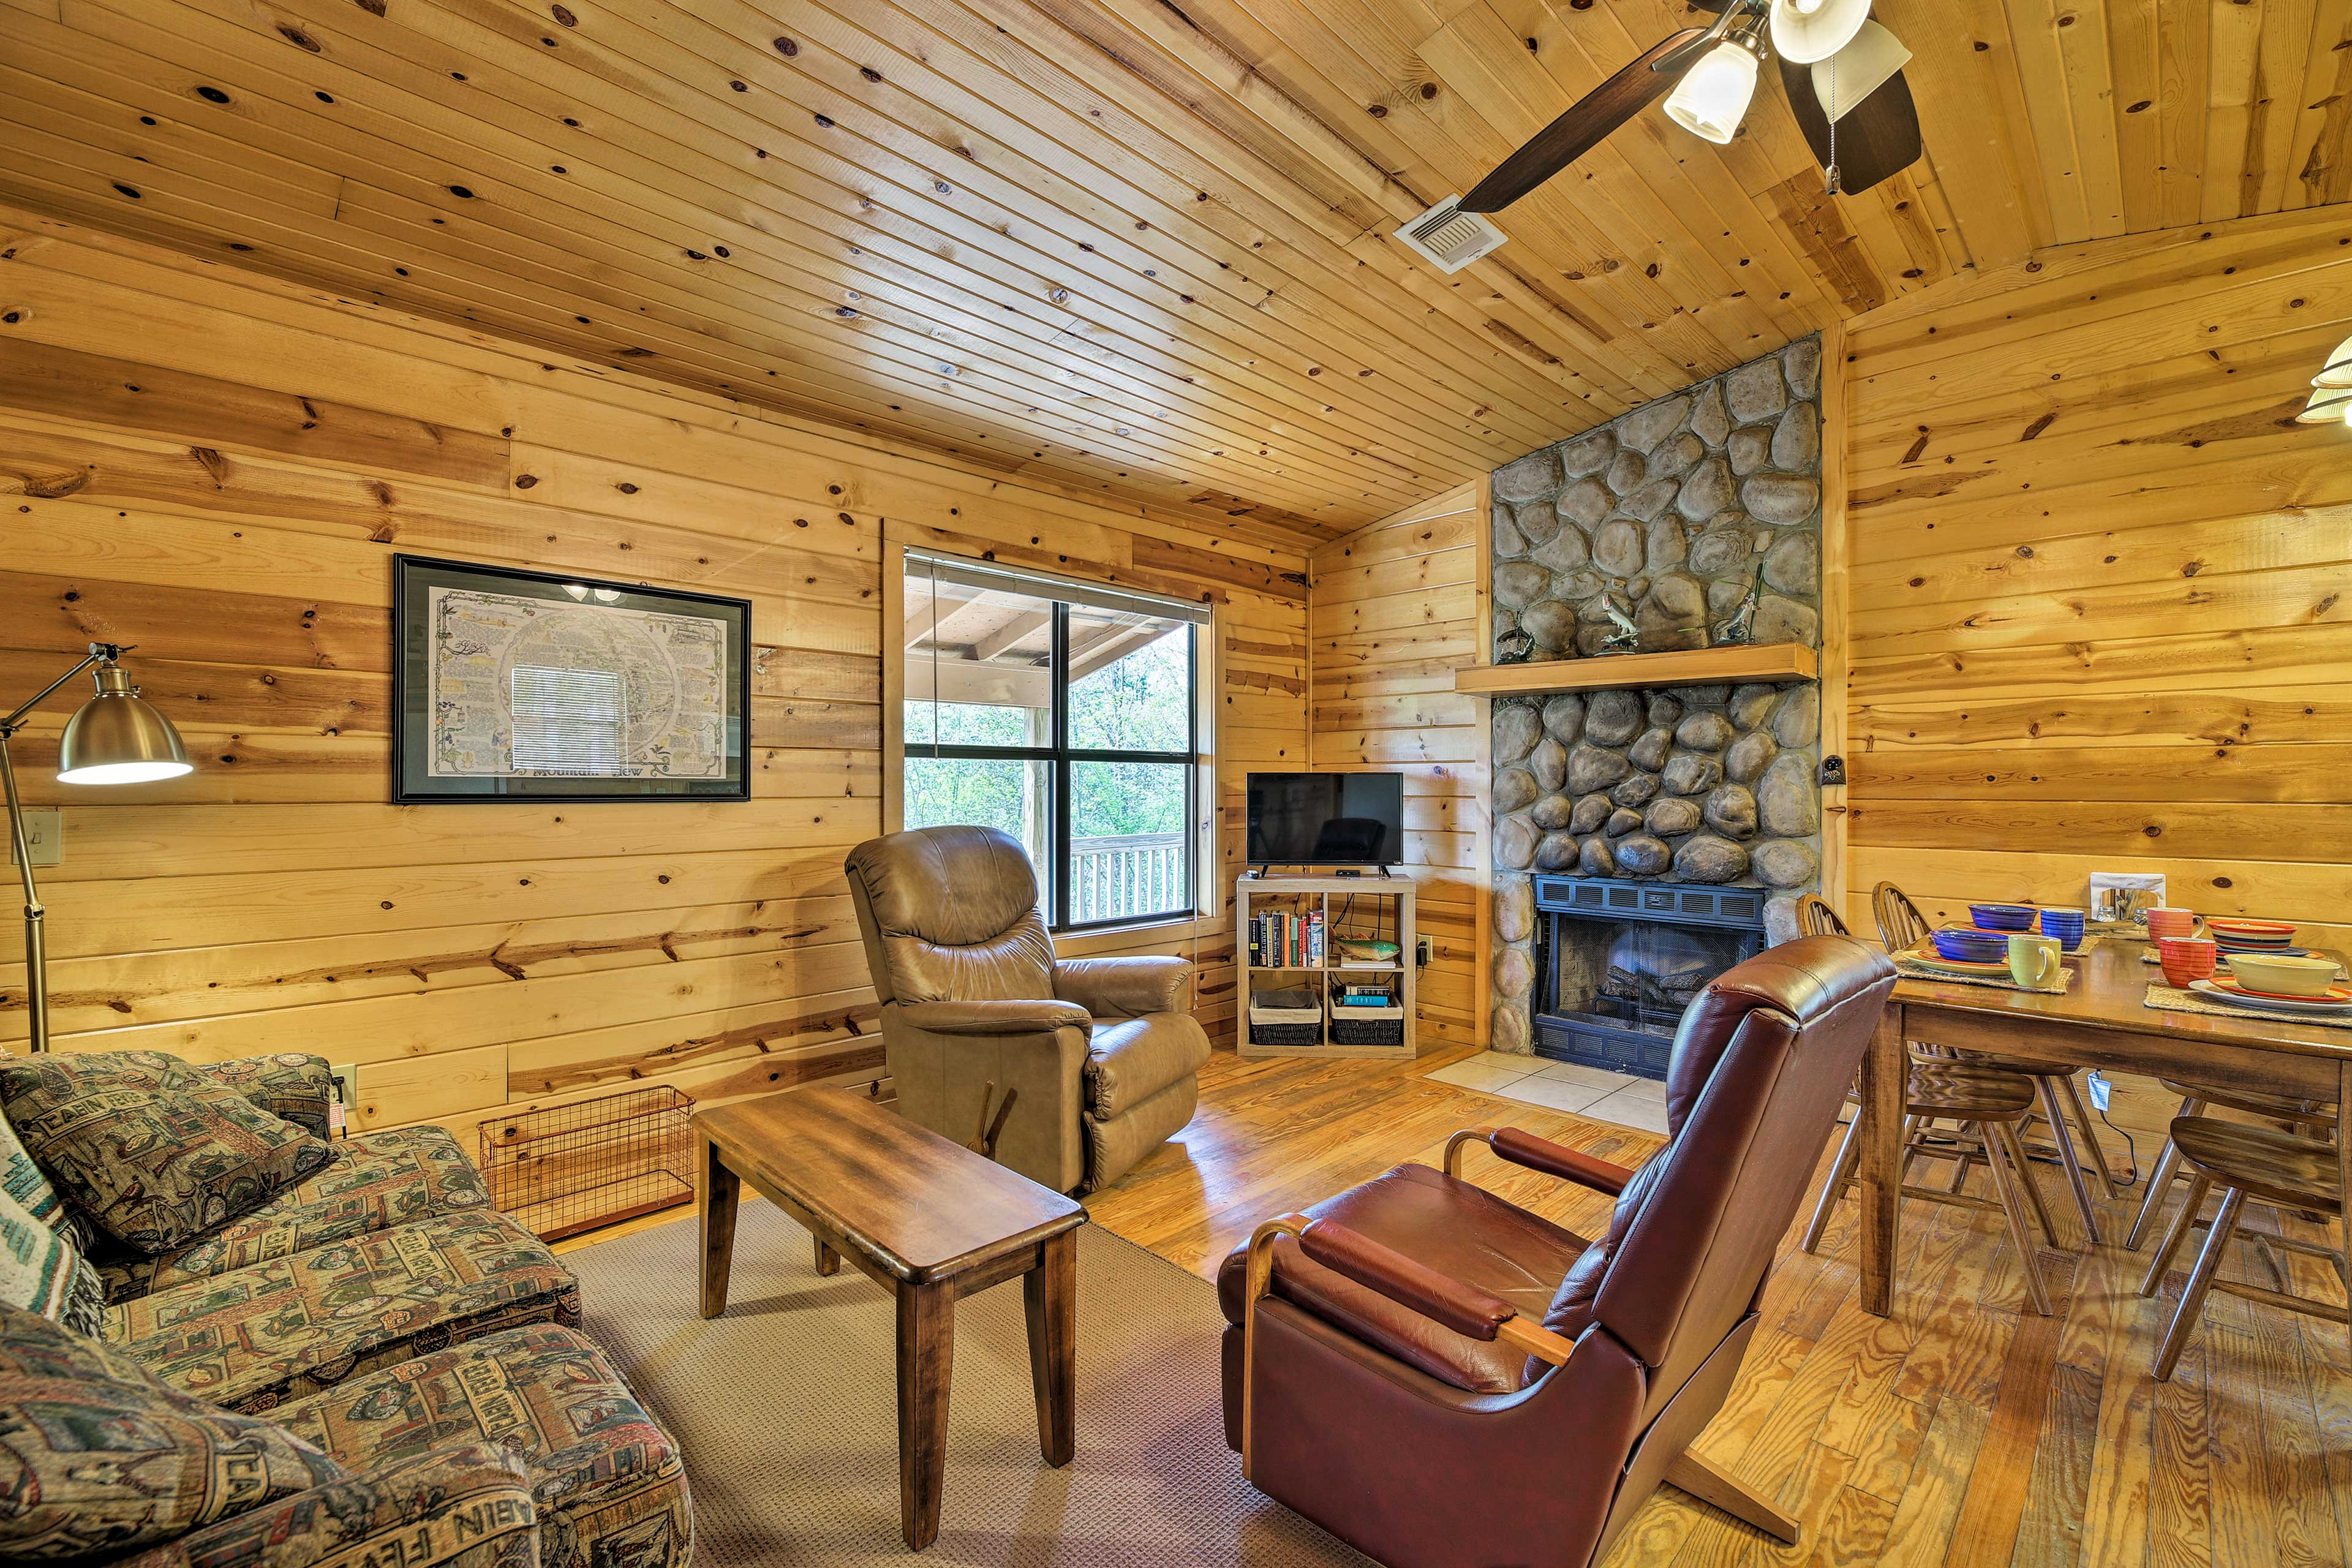 This vacation rental for 6 has 2 bedrooms and 1 bath.